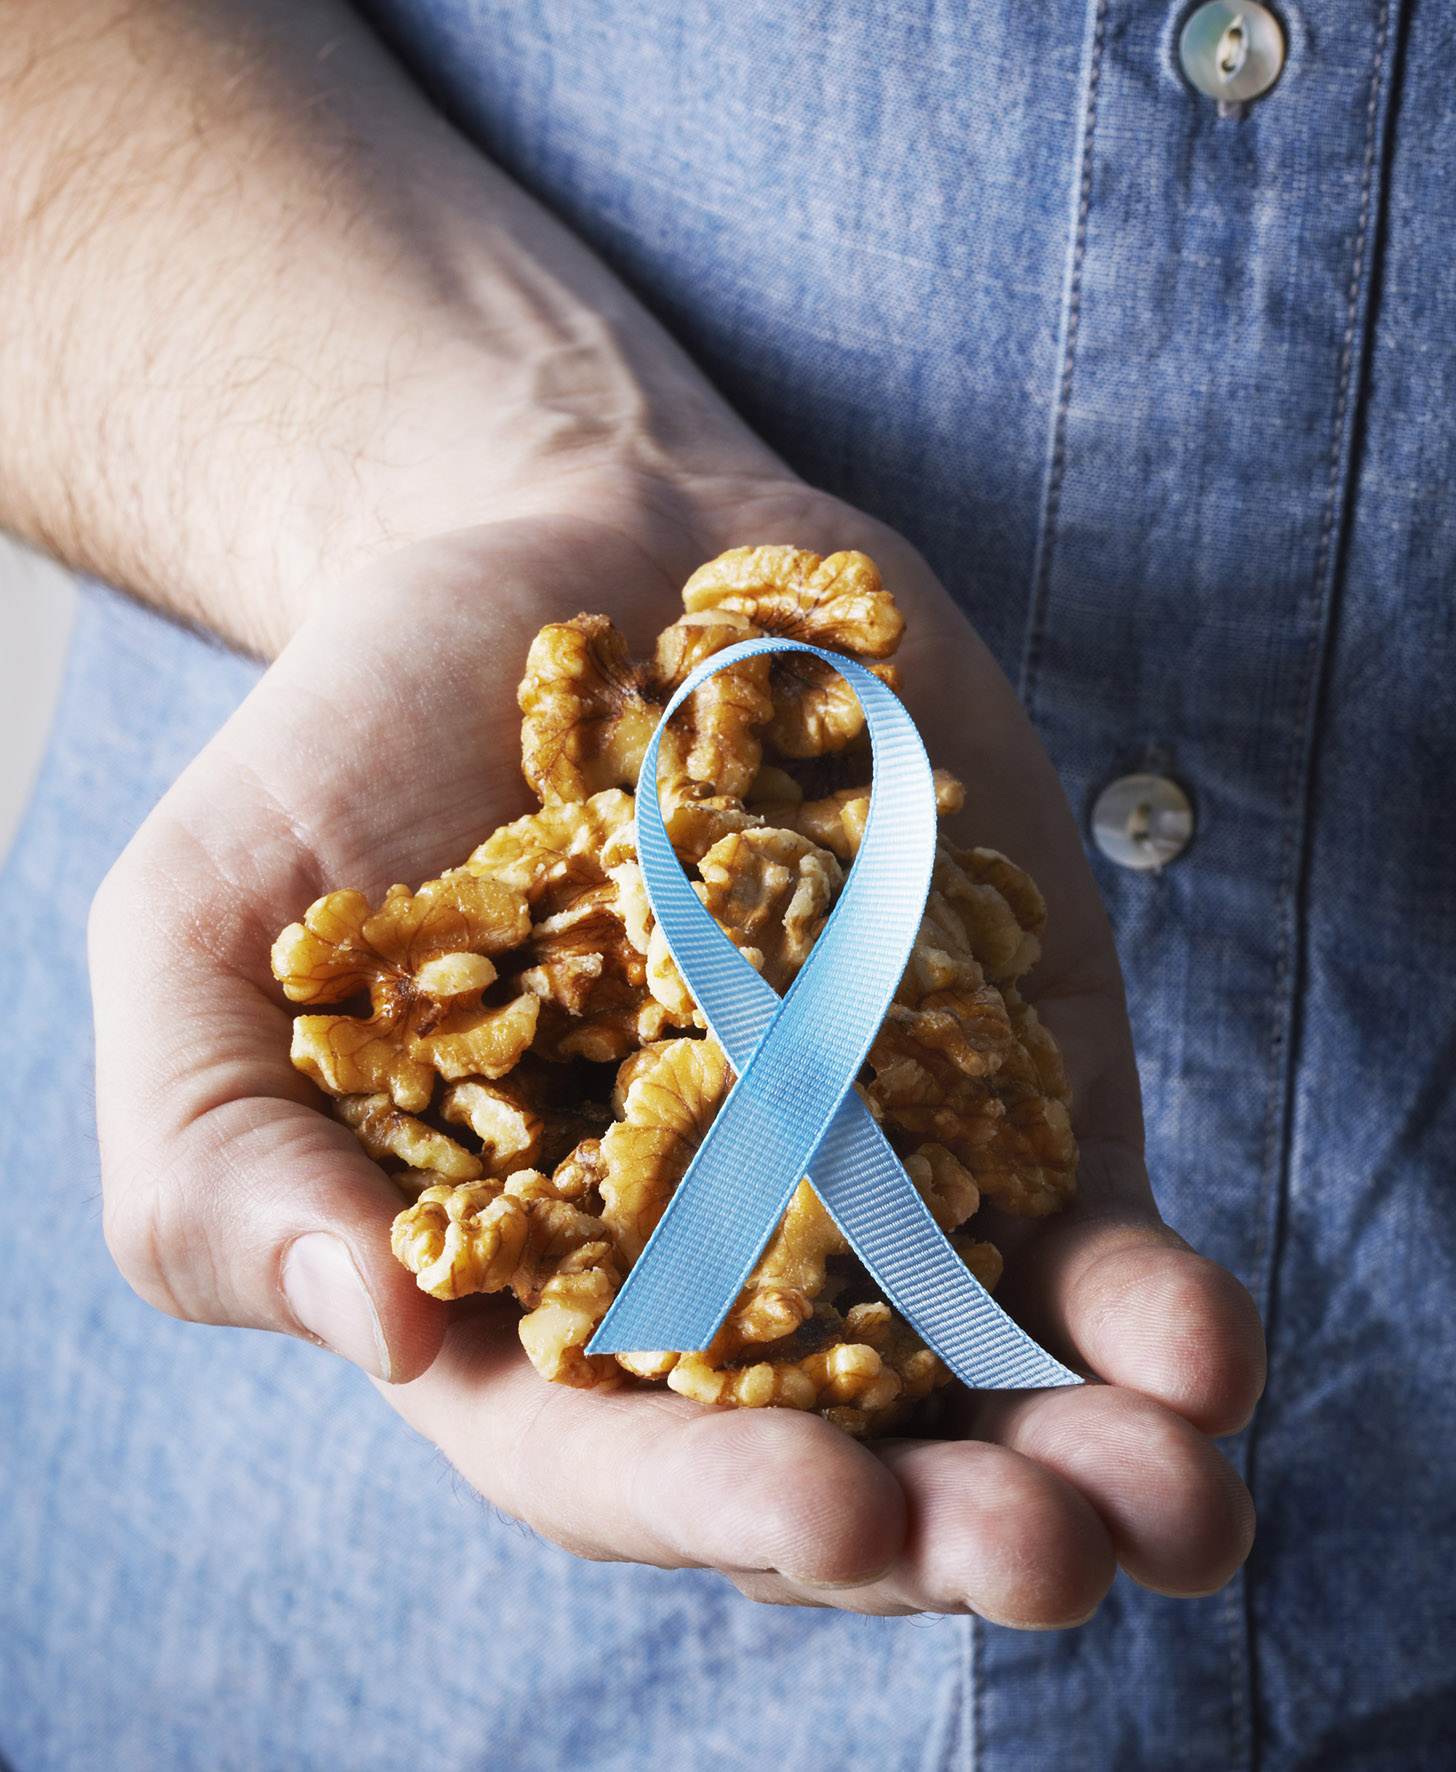 nueces y cancer de prostata